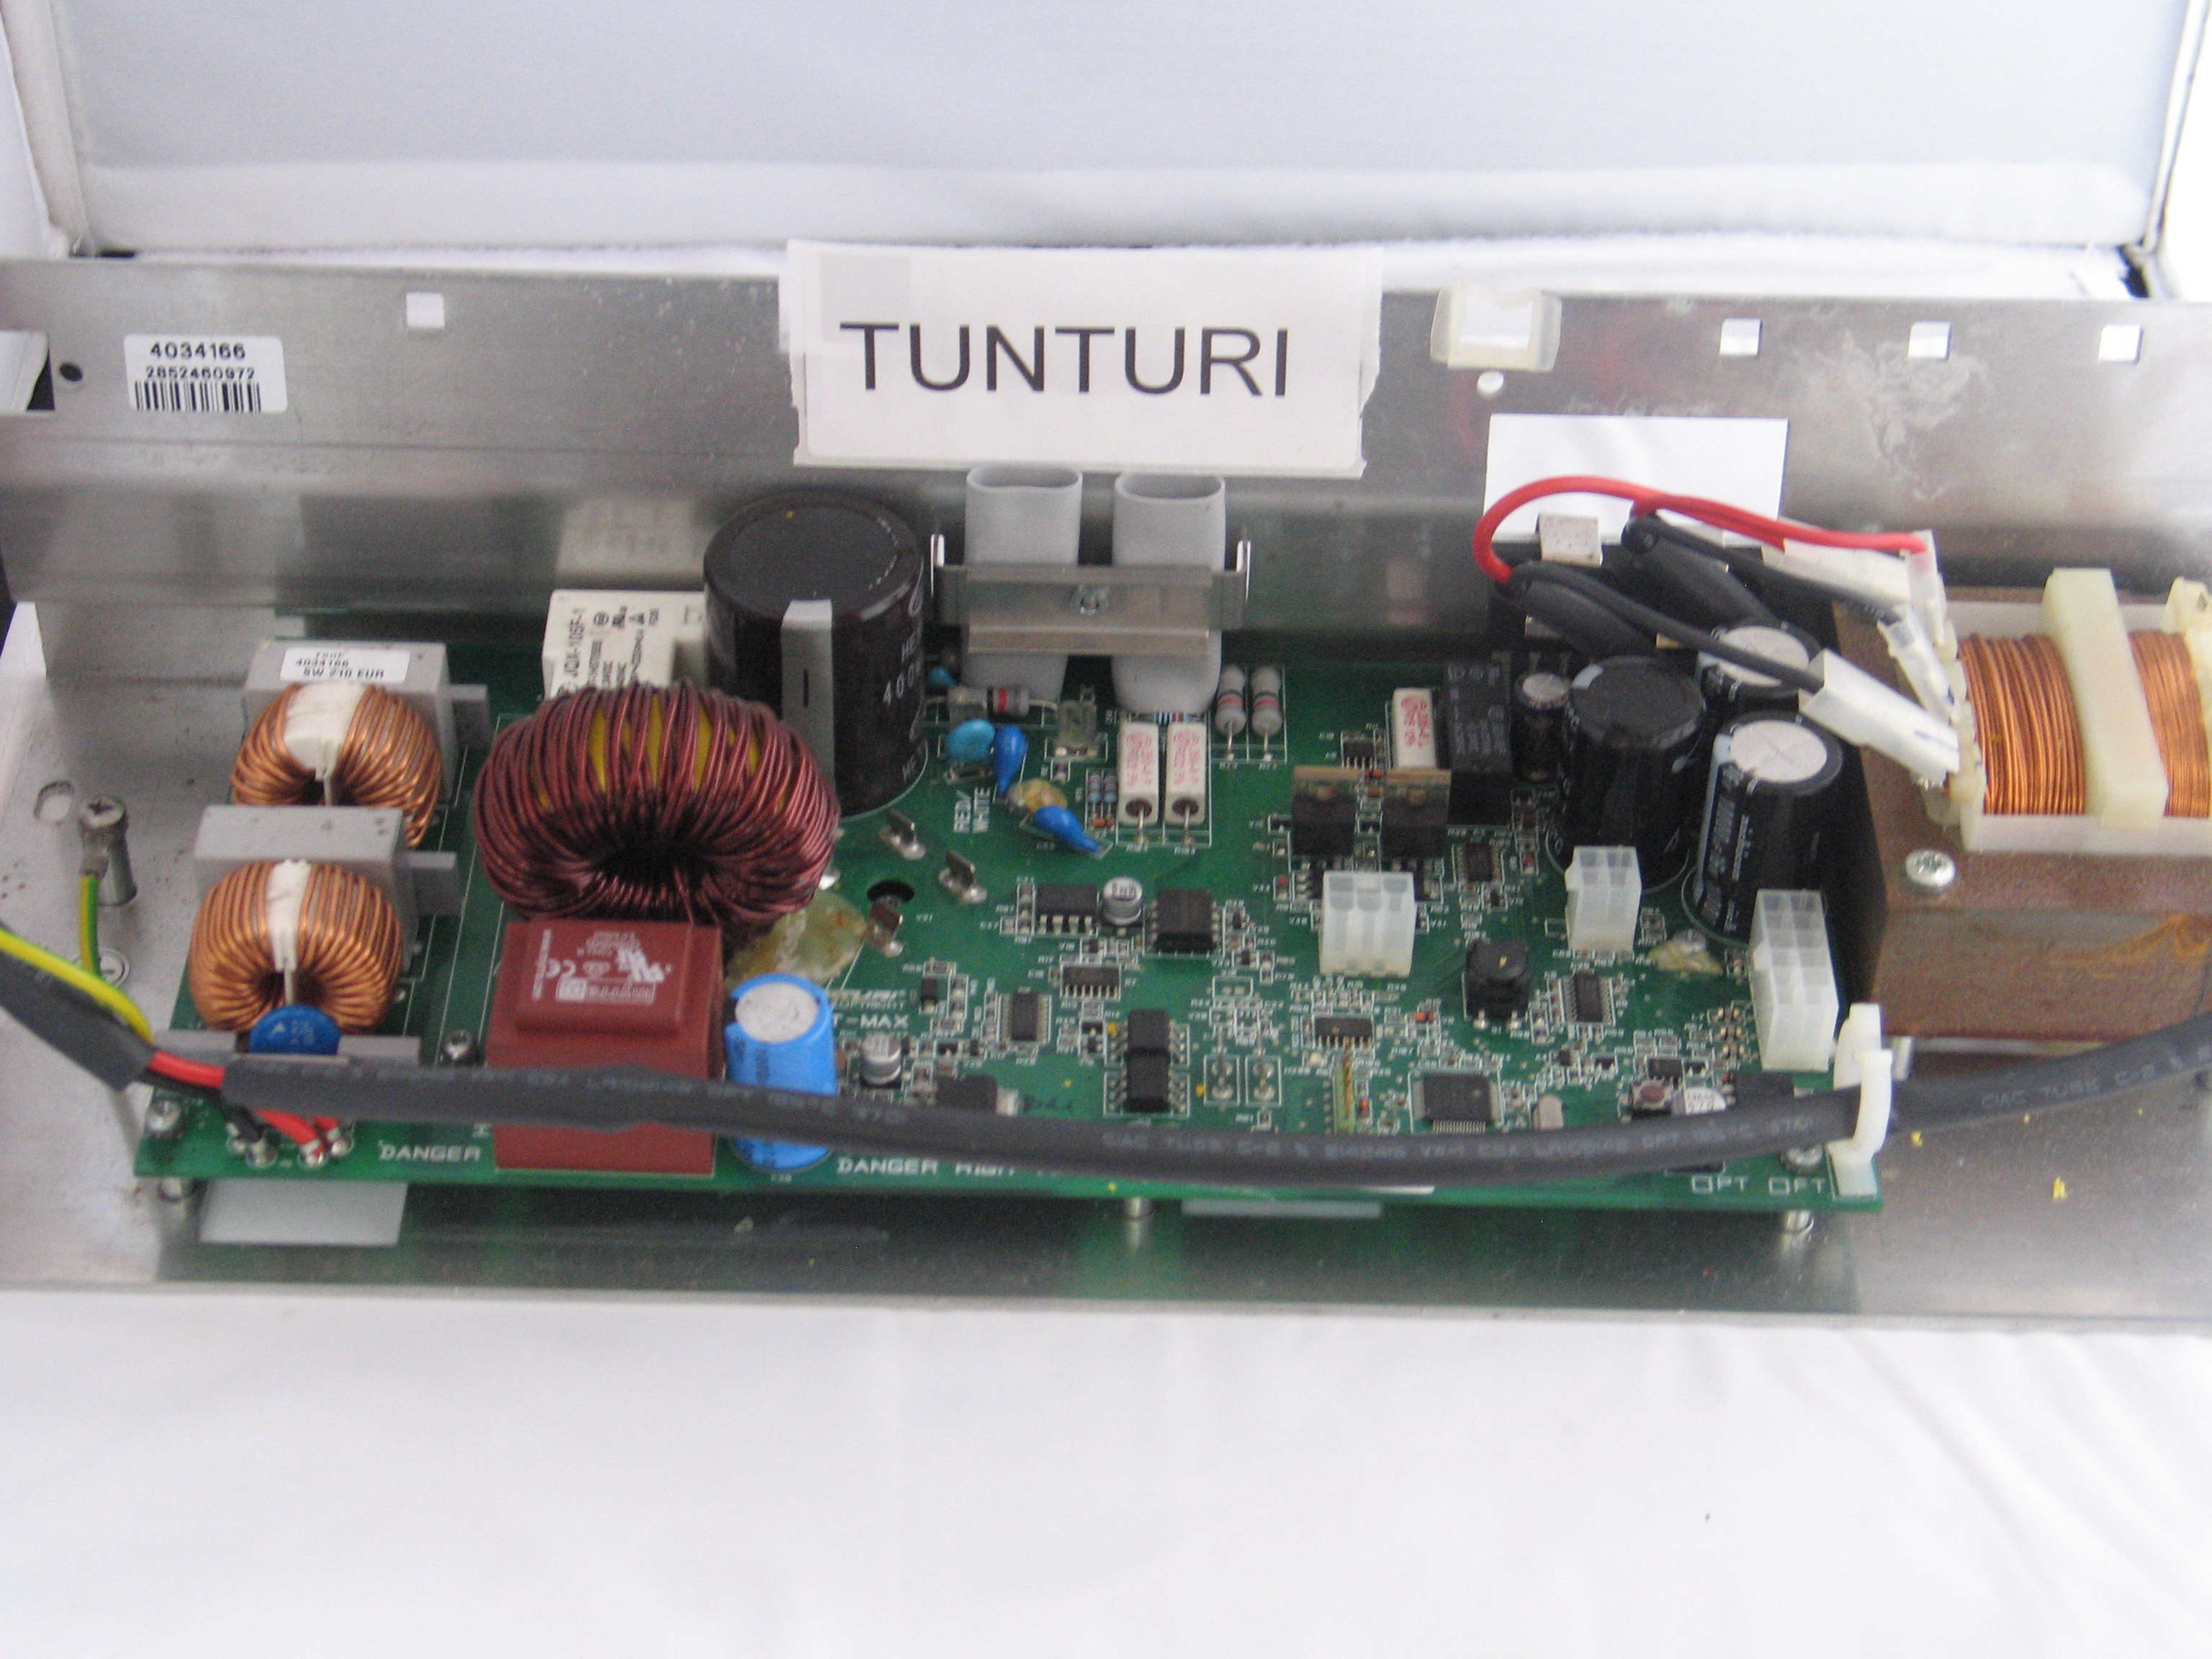 Test And Repair Horizon Motor Control Board Treadmill Doctor Electronic Circuit Contol Boards Testing Service Tunturi